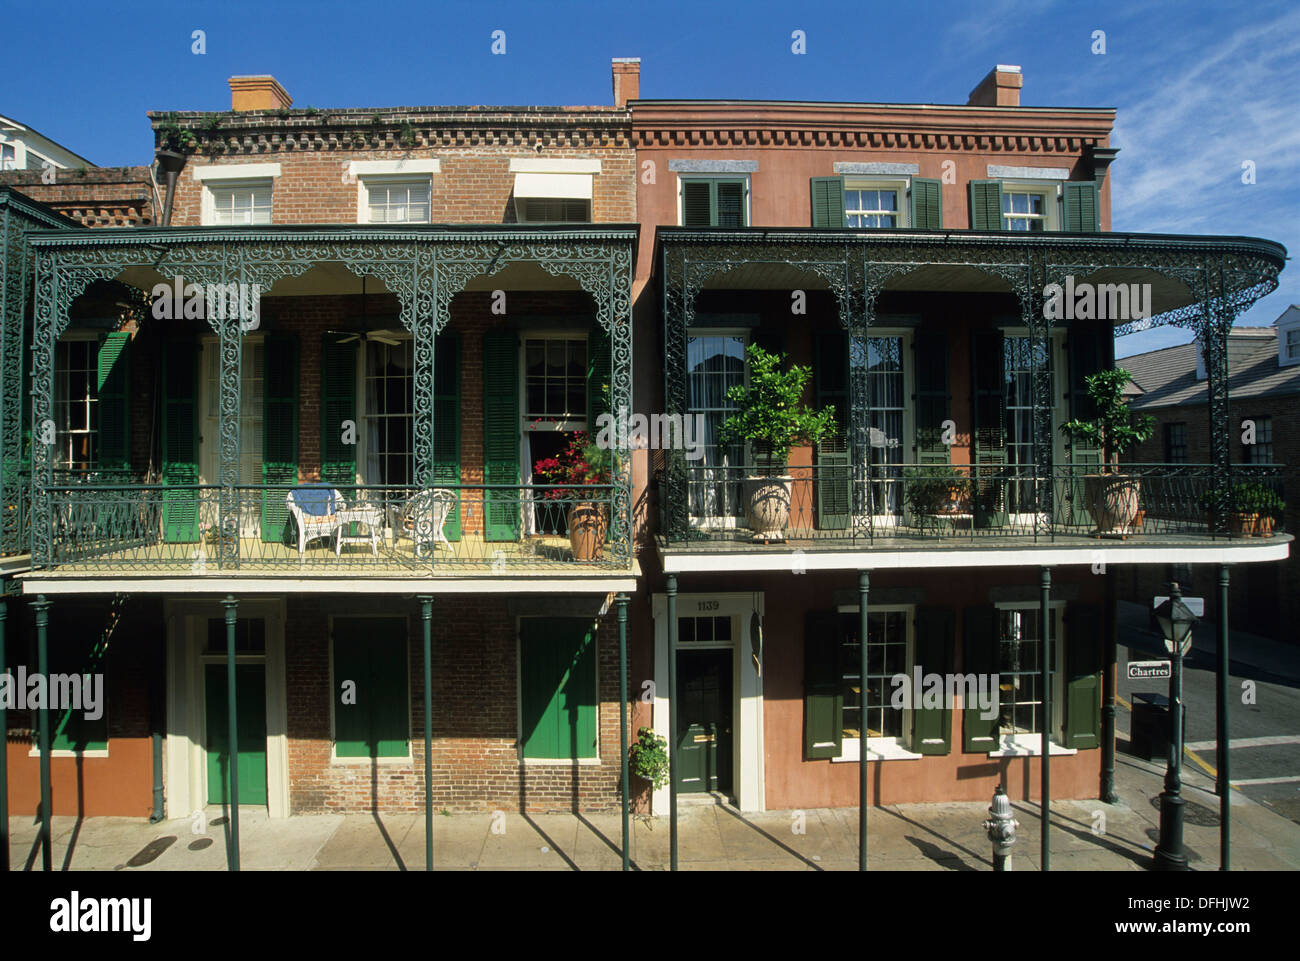 Stock photo luxury hotel soniat house chartres street french quarter neighborhood new orleans louisiana united states of america